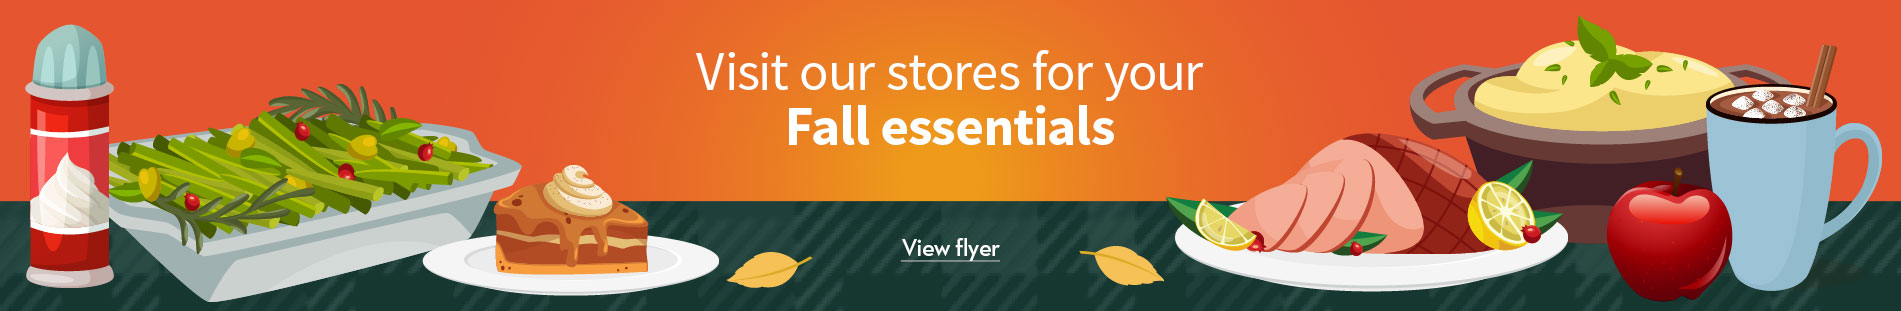 Visit your stores for your fall essentials - View flyer